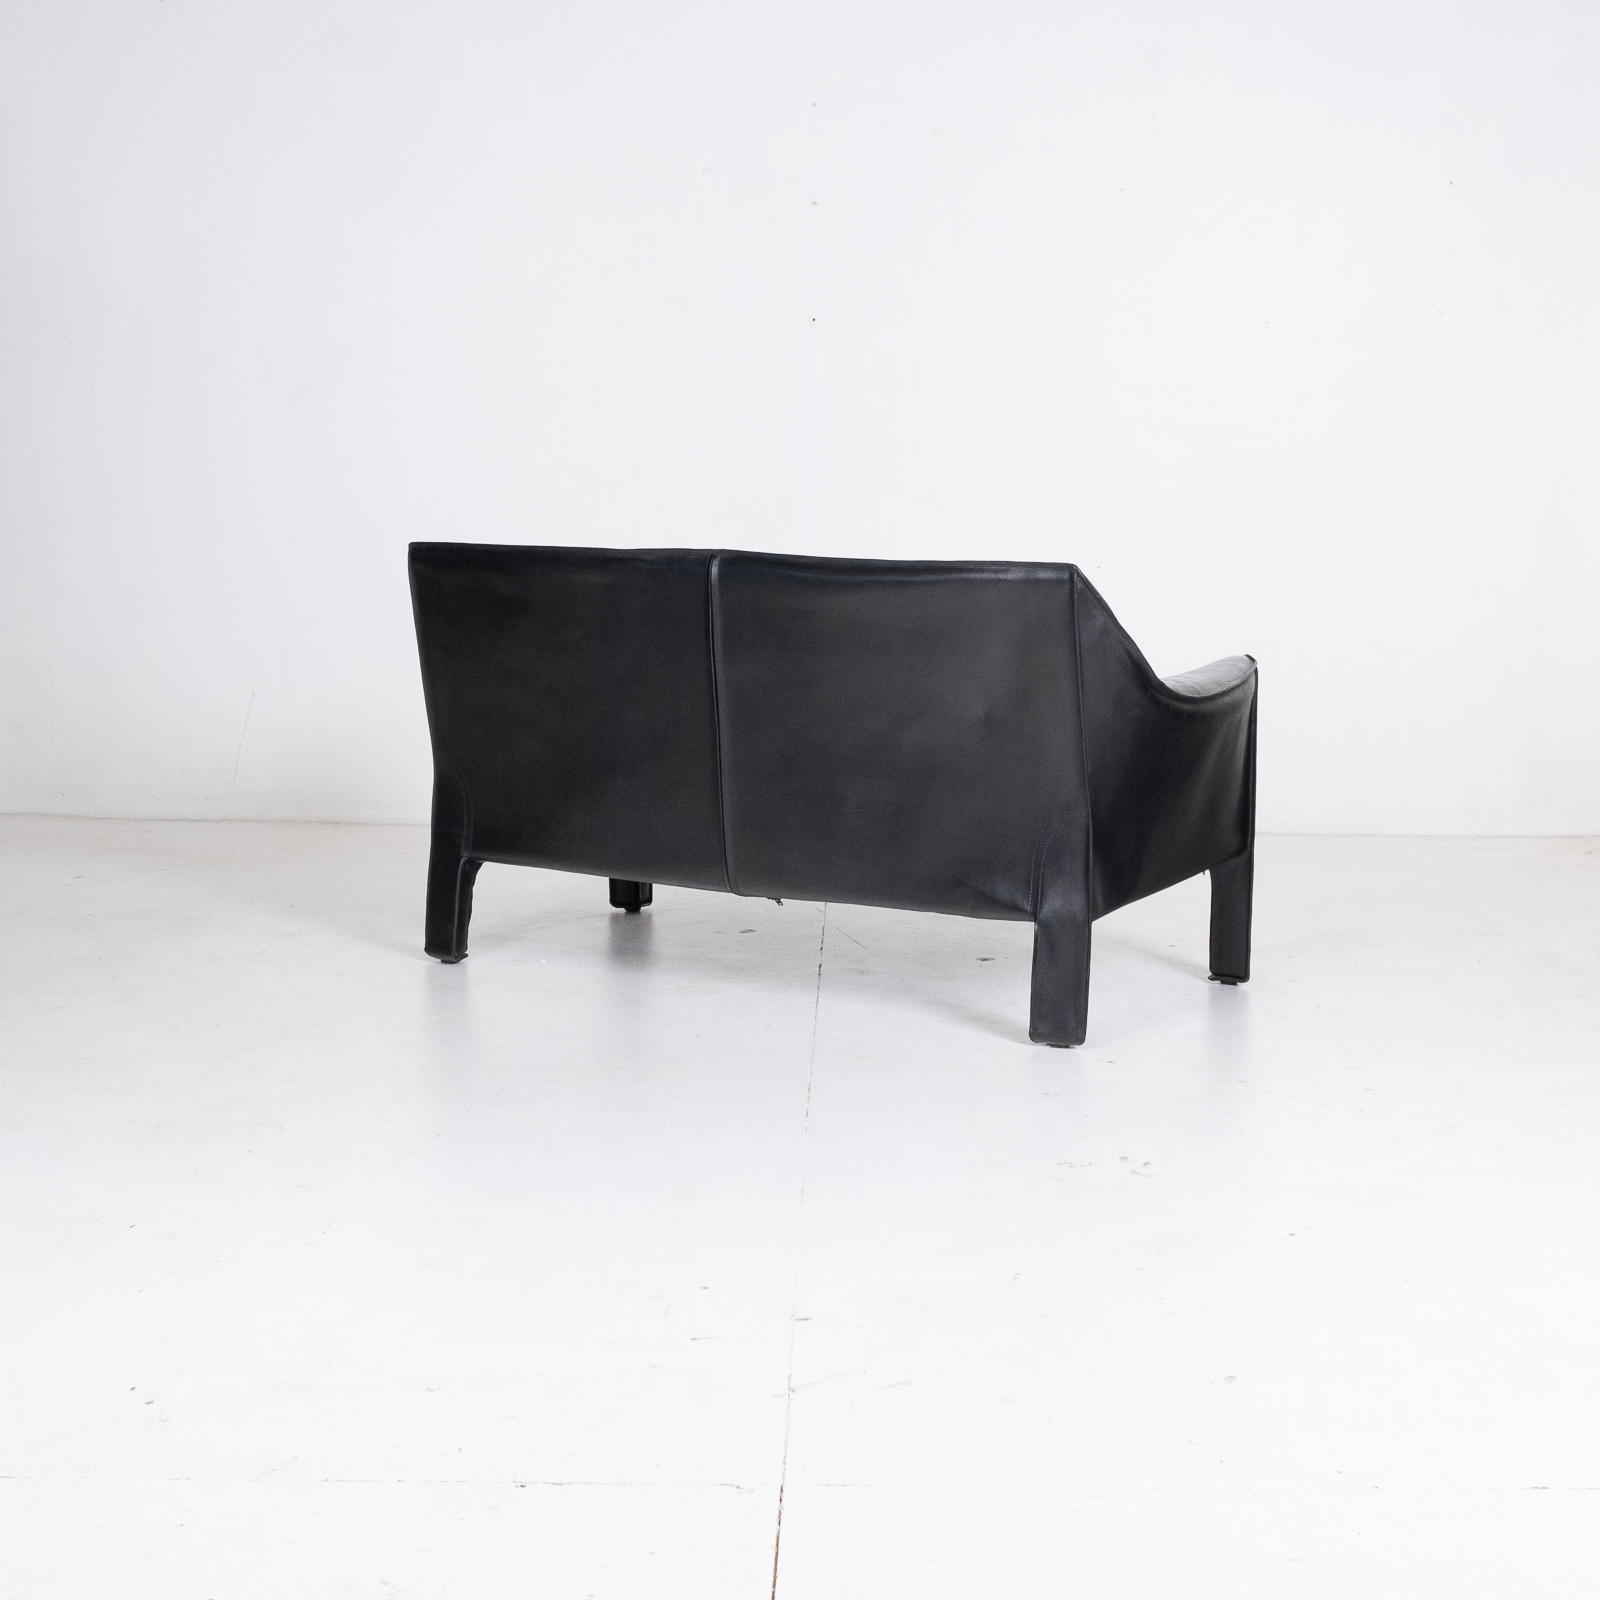 Model 415 Cab 2 Seat Sofa By Mario Bellini For Cassina In Black Leather, 1987, Italy 00005